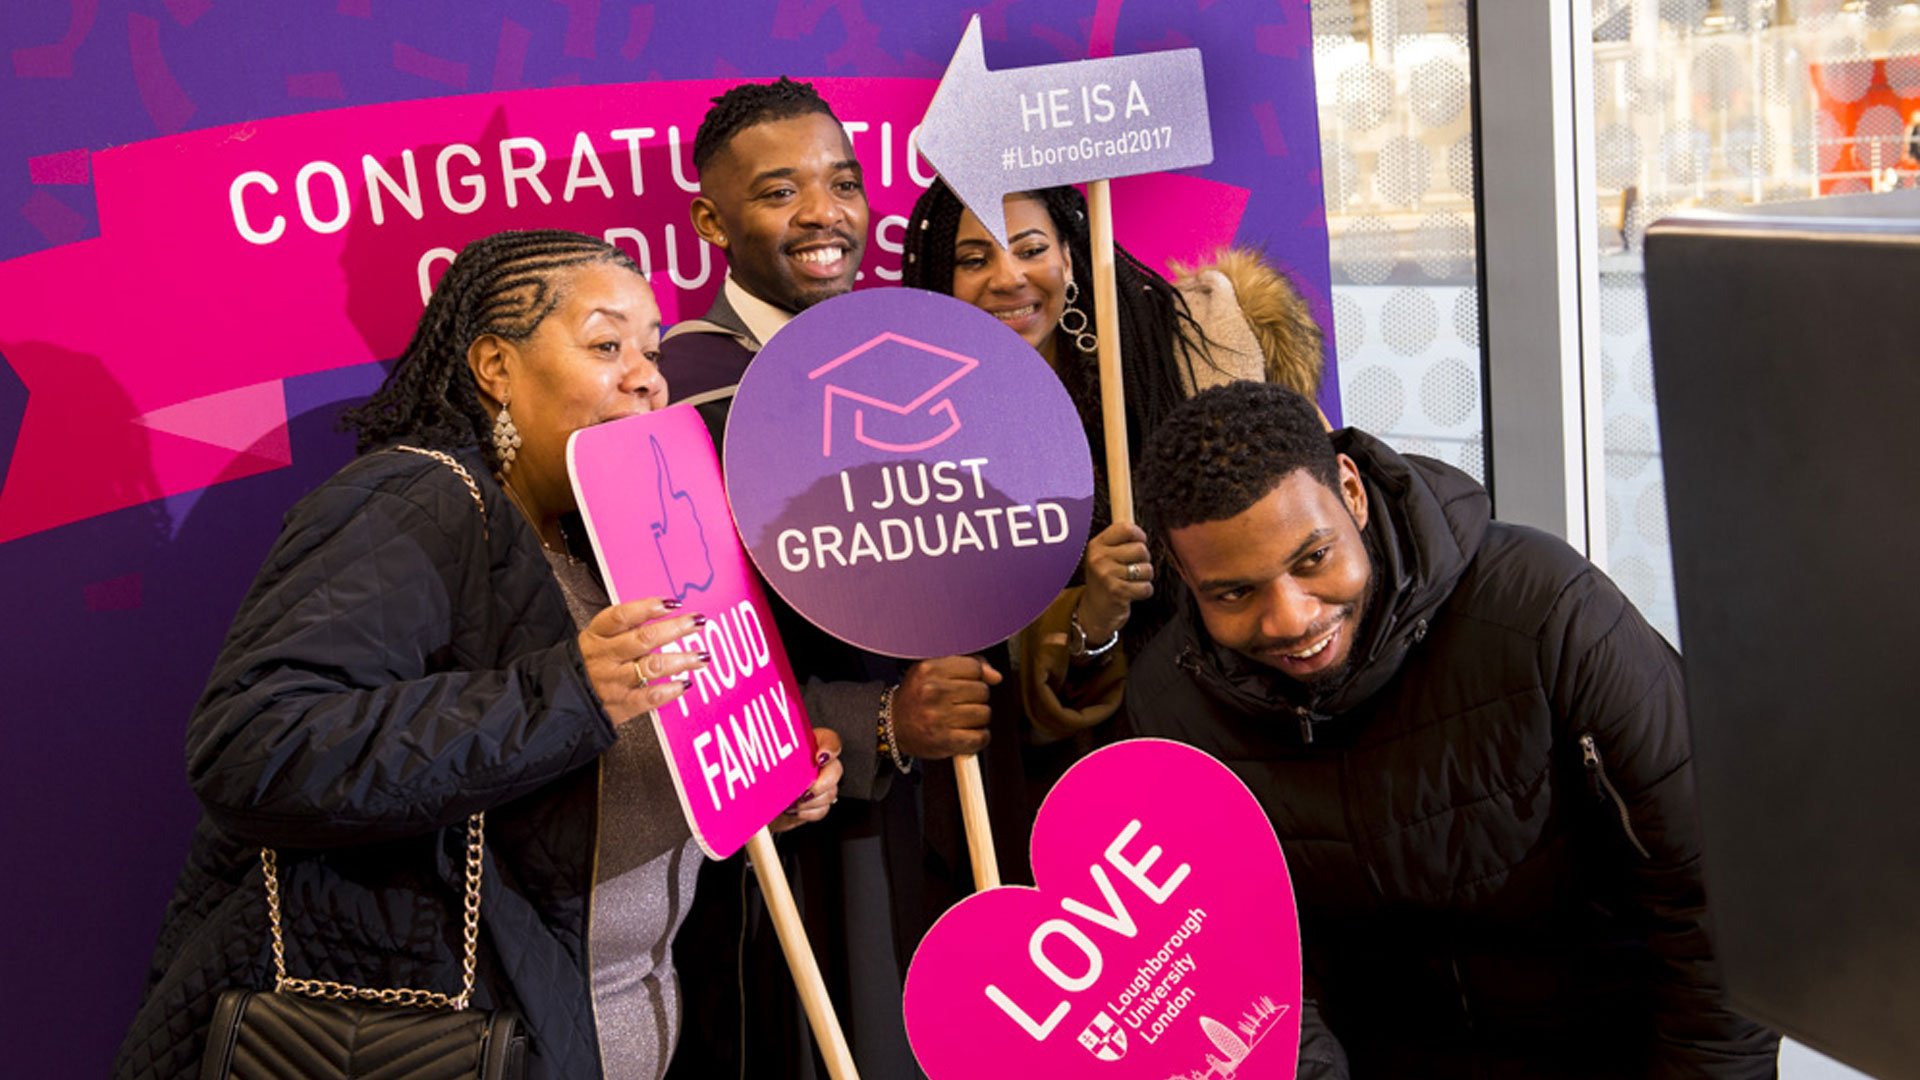 Things you should know ahead of #LboroGrad2018